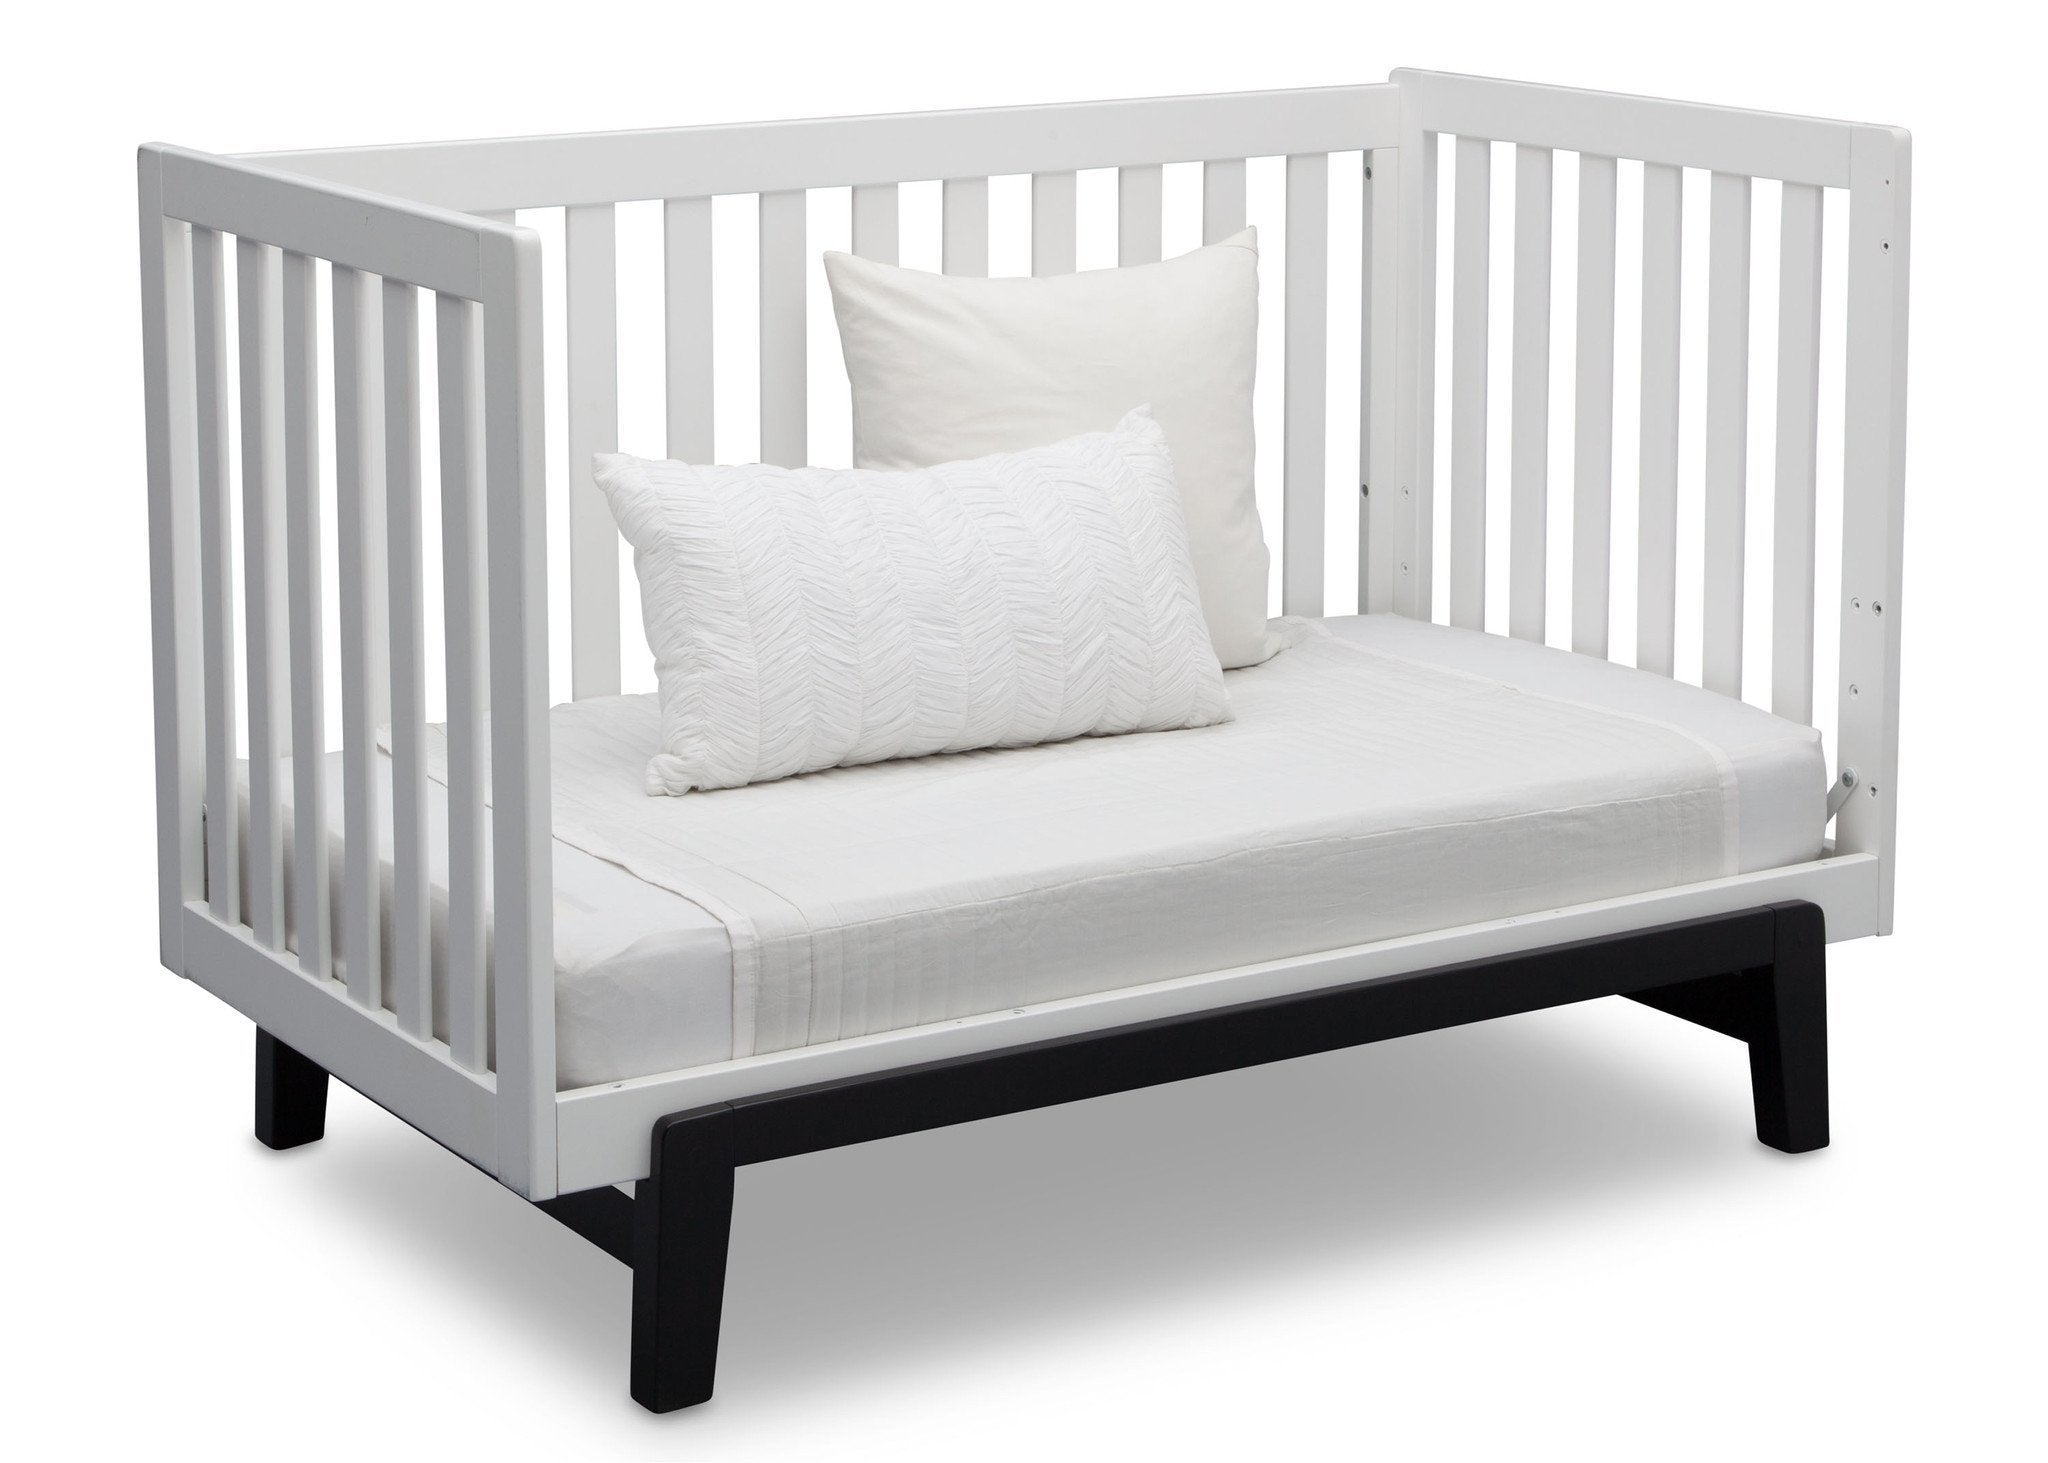 Delta Children Bianca White with Ebony (149) Aster 3-in-1 Crib, Daybed Conversion a7a